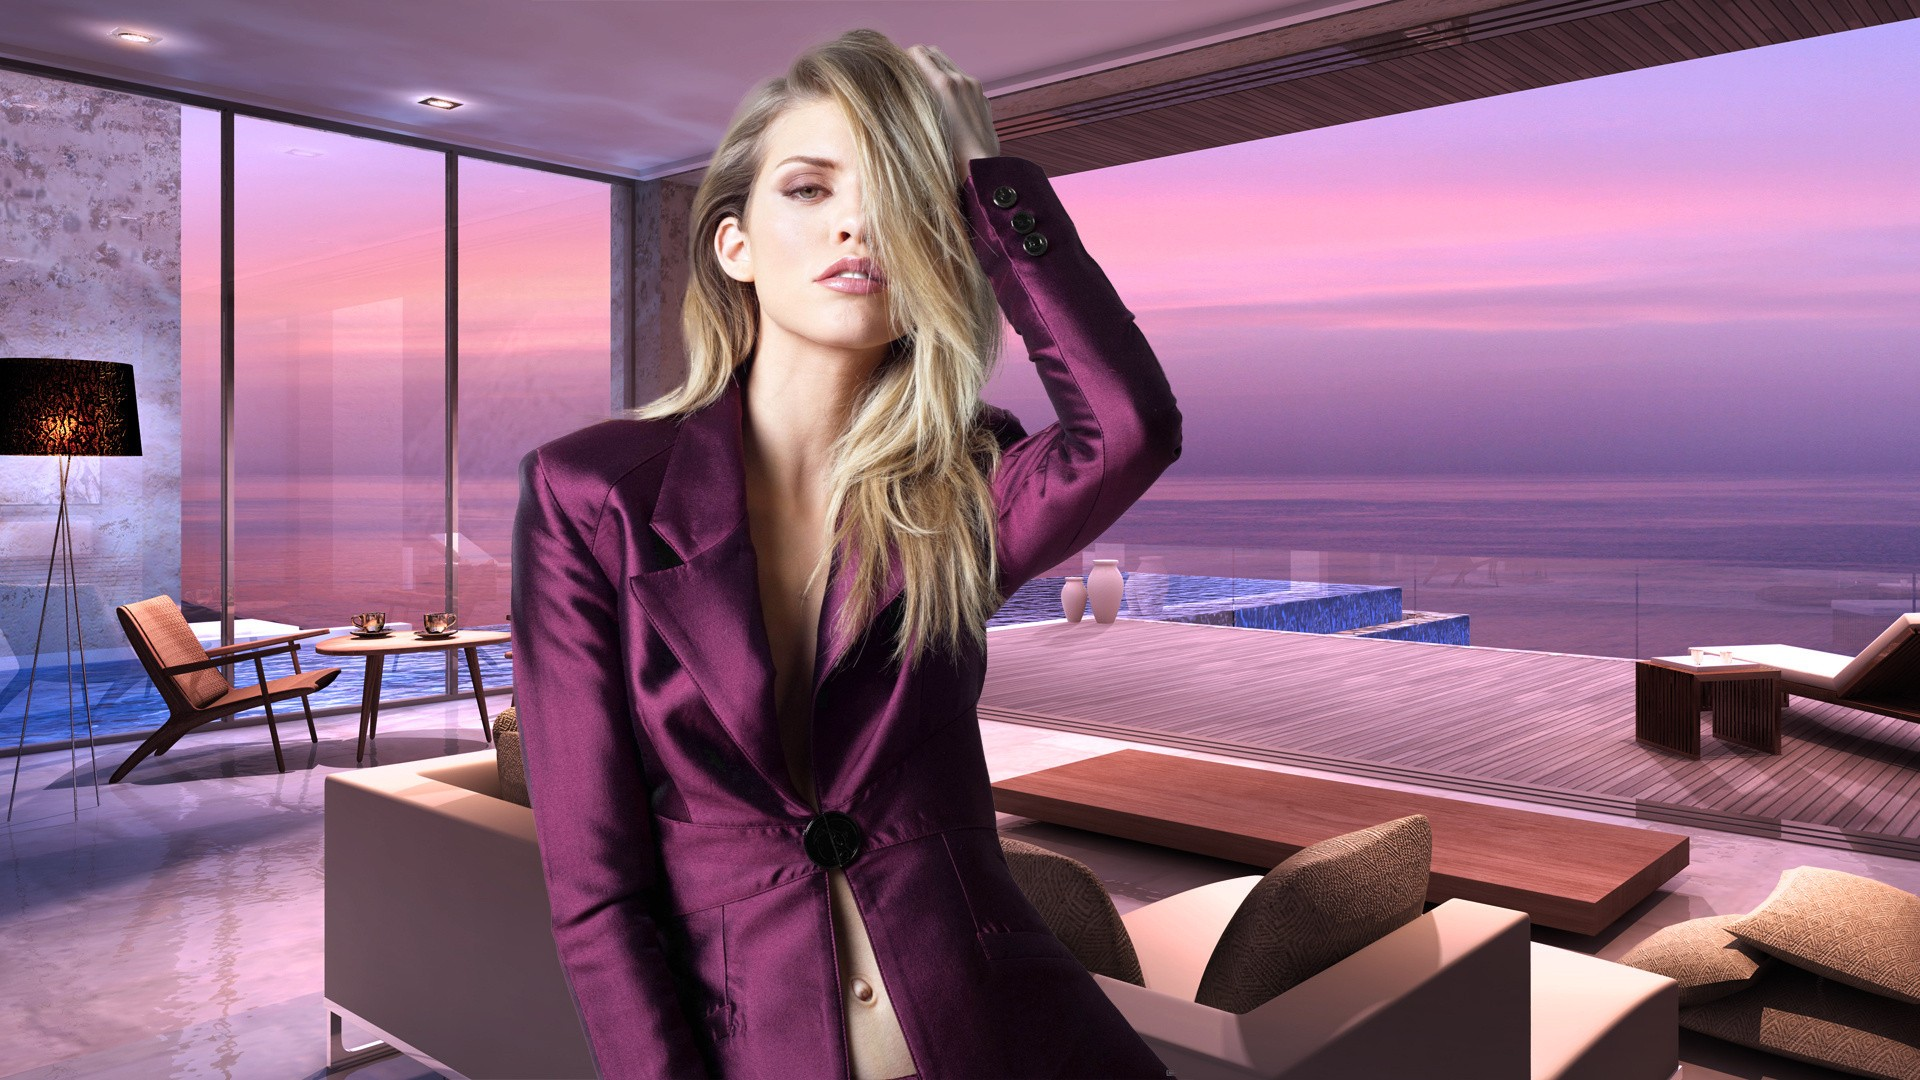 People 1920x1080 women hair   blonde dress skirt model luxury purple sea beach house